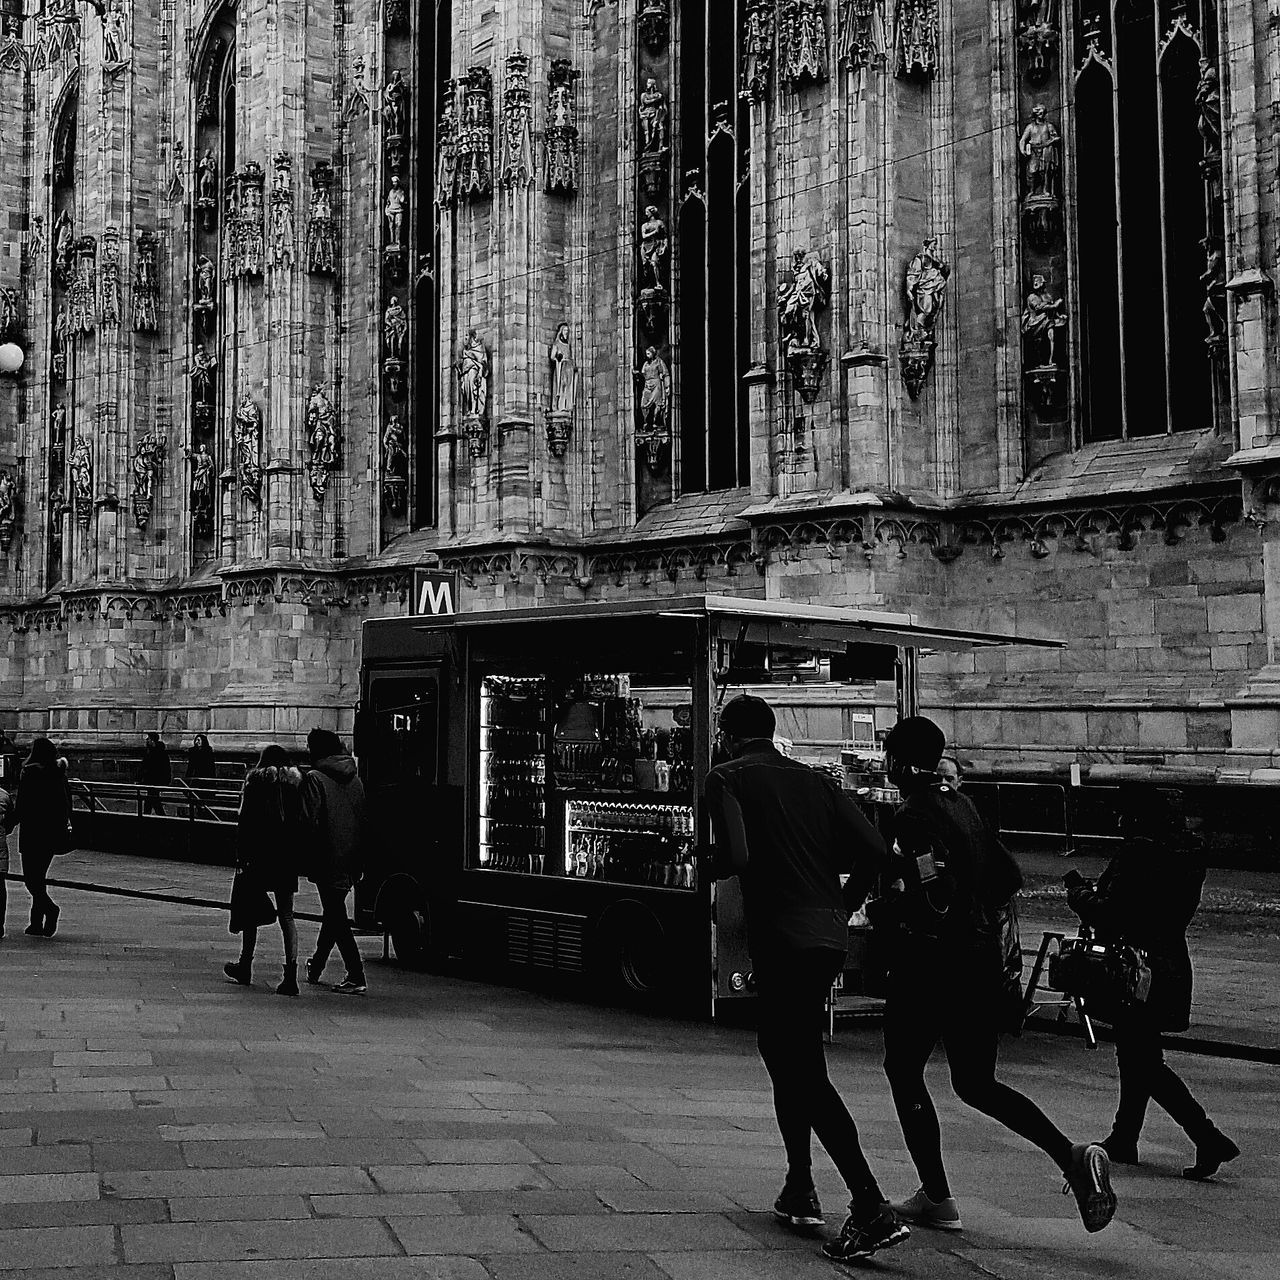 men, real people, built structure, architecture, day, building exterior, full length, place of worship, lifestyles, women, outdoors, mammal, people